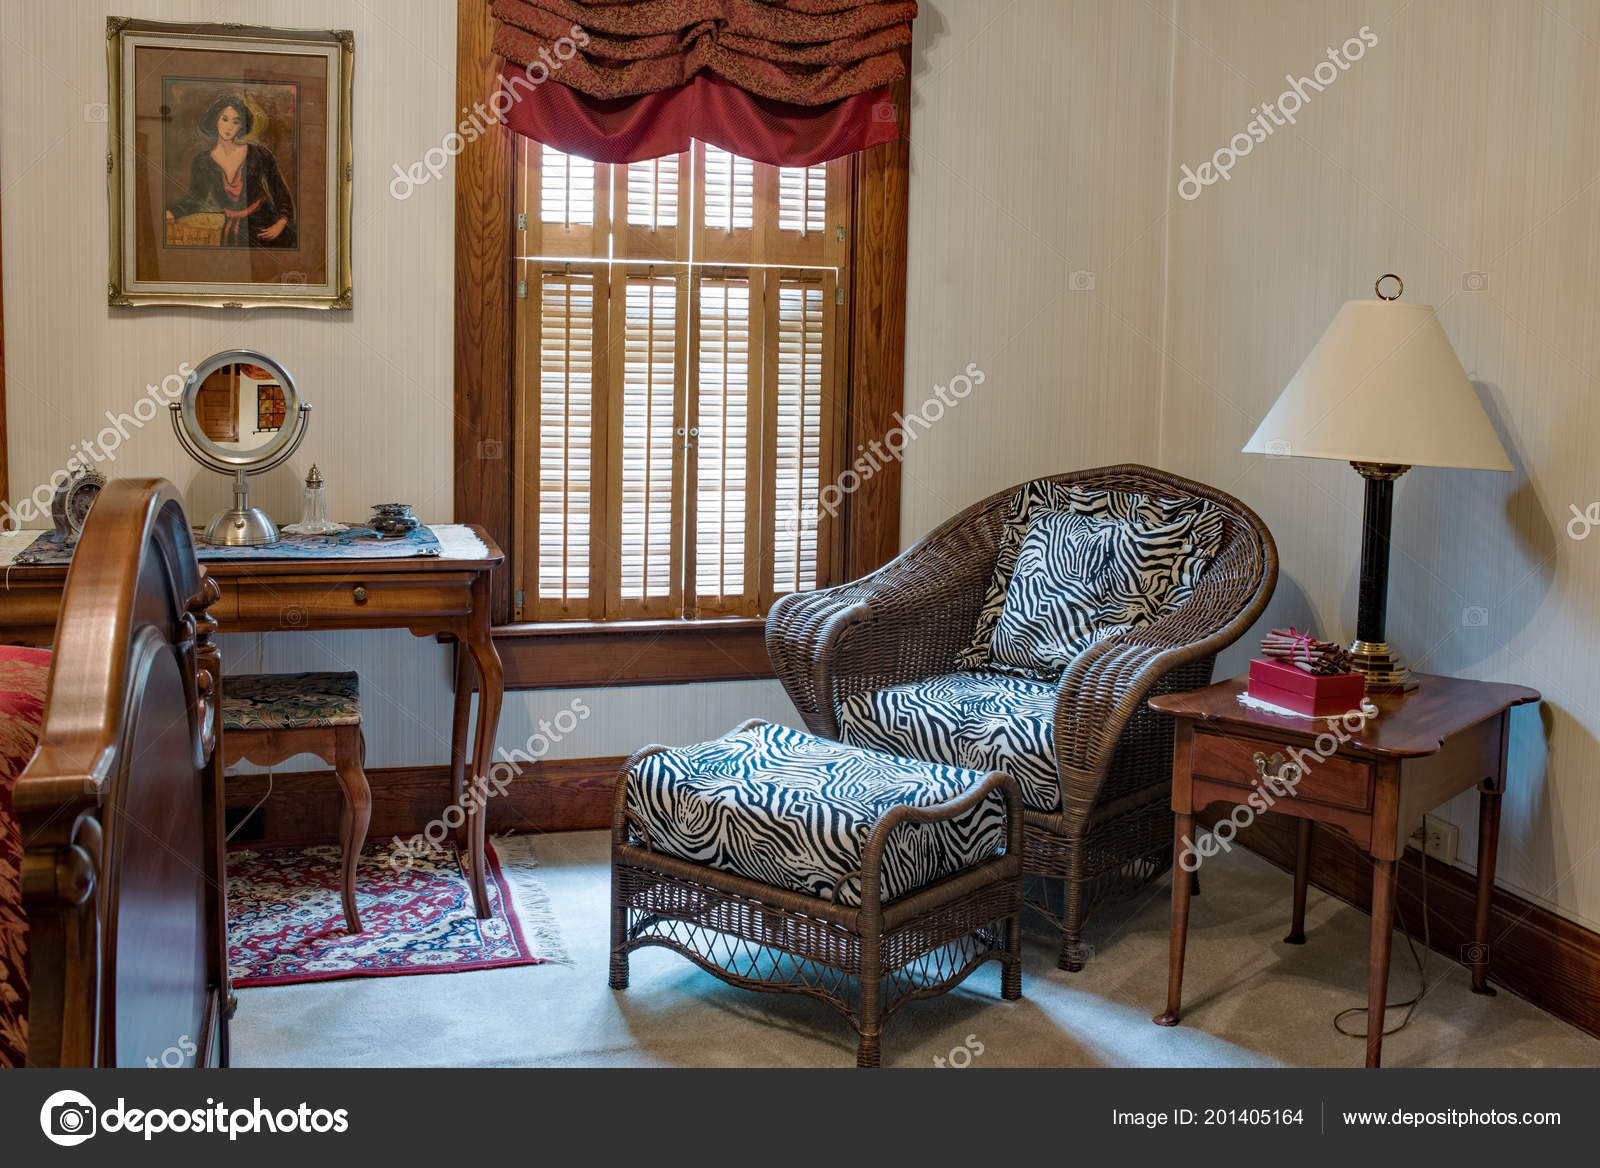 Bedroom Sitting Area Wicker Chair – Stock Editorial Photo ...